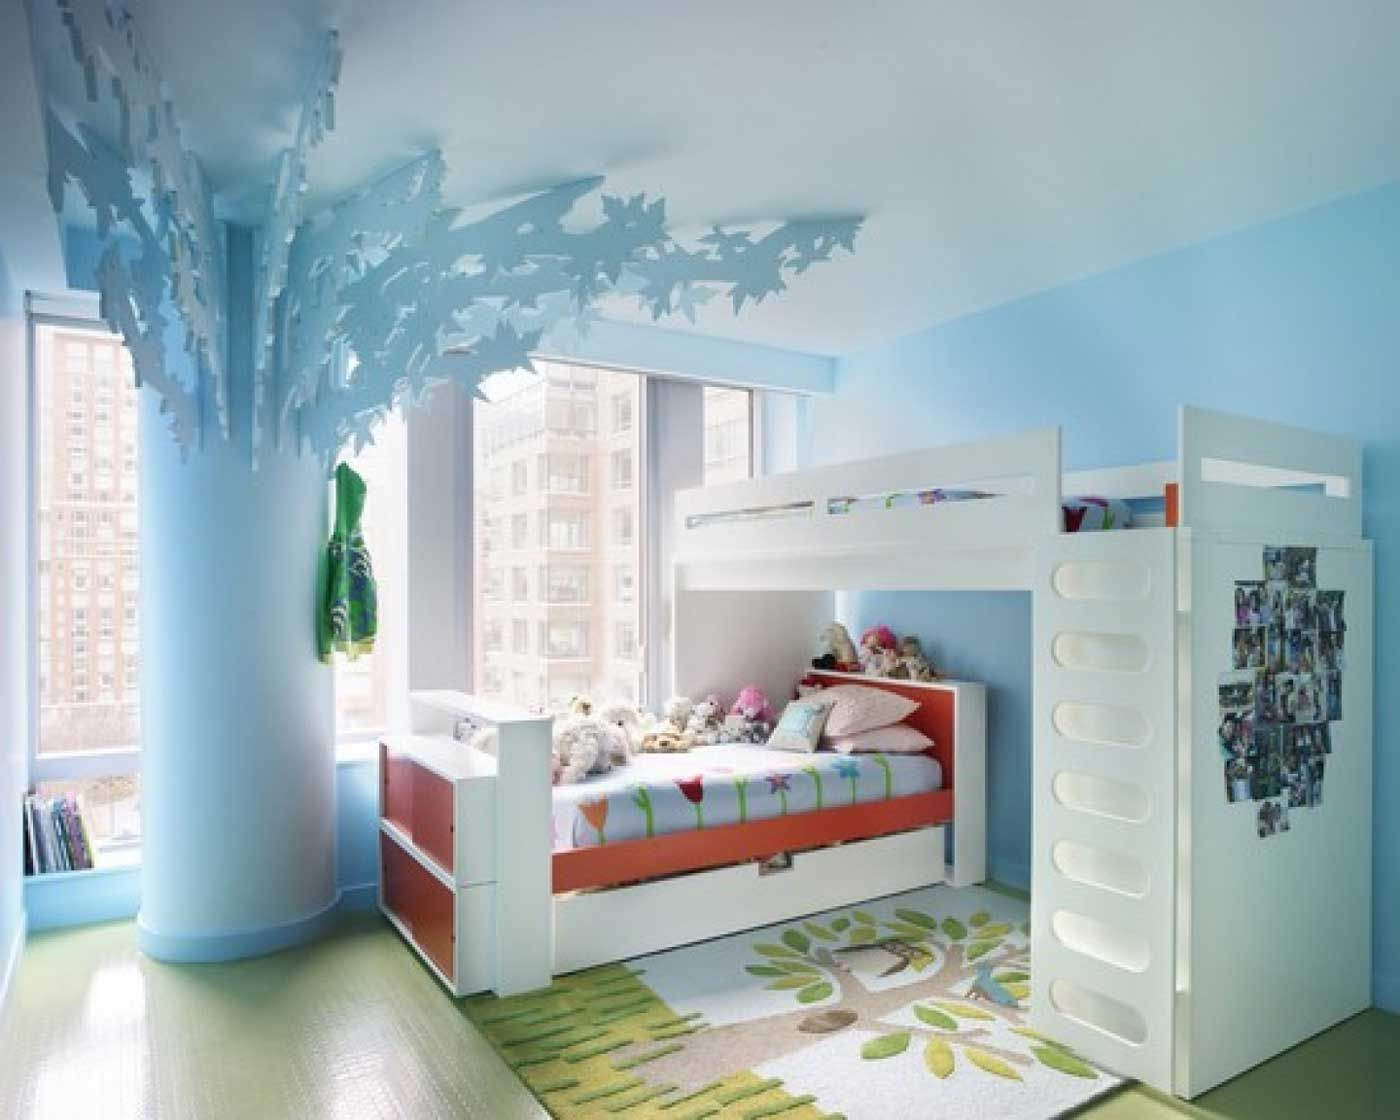 Cool kids room ideas for small bedroom designs with creative white colored loft bed idea and interesting white frame bed design also calm blue accents for